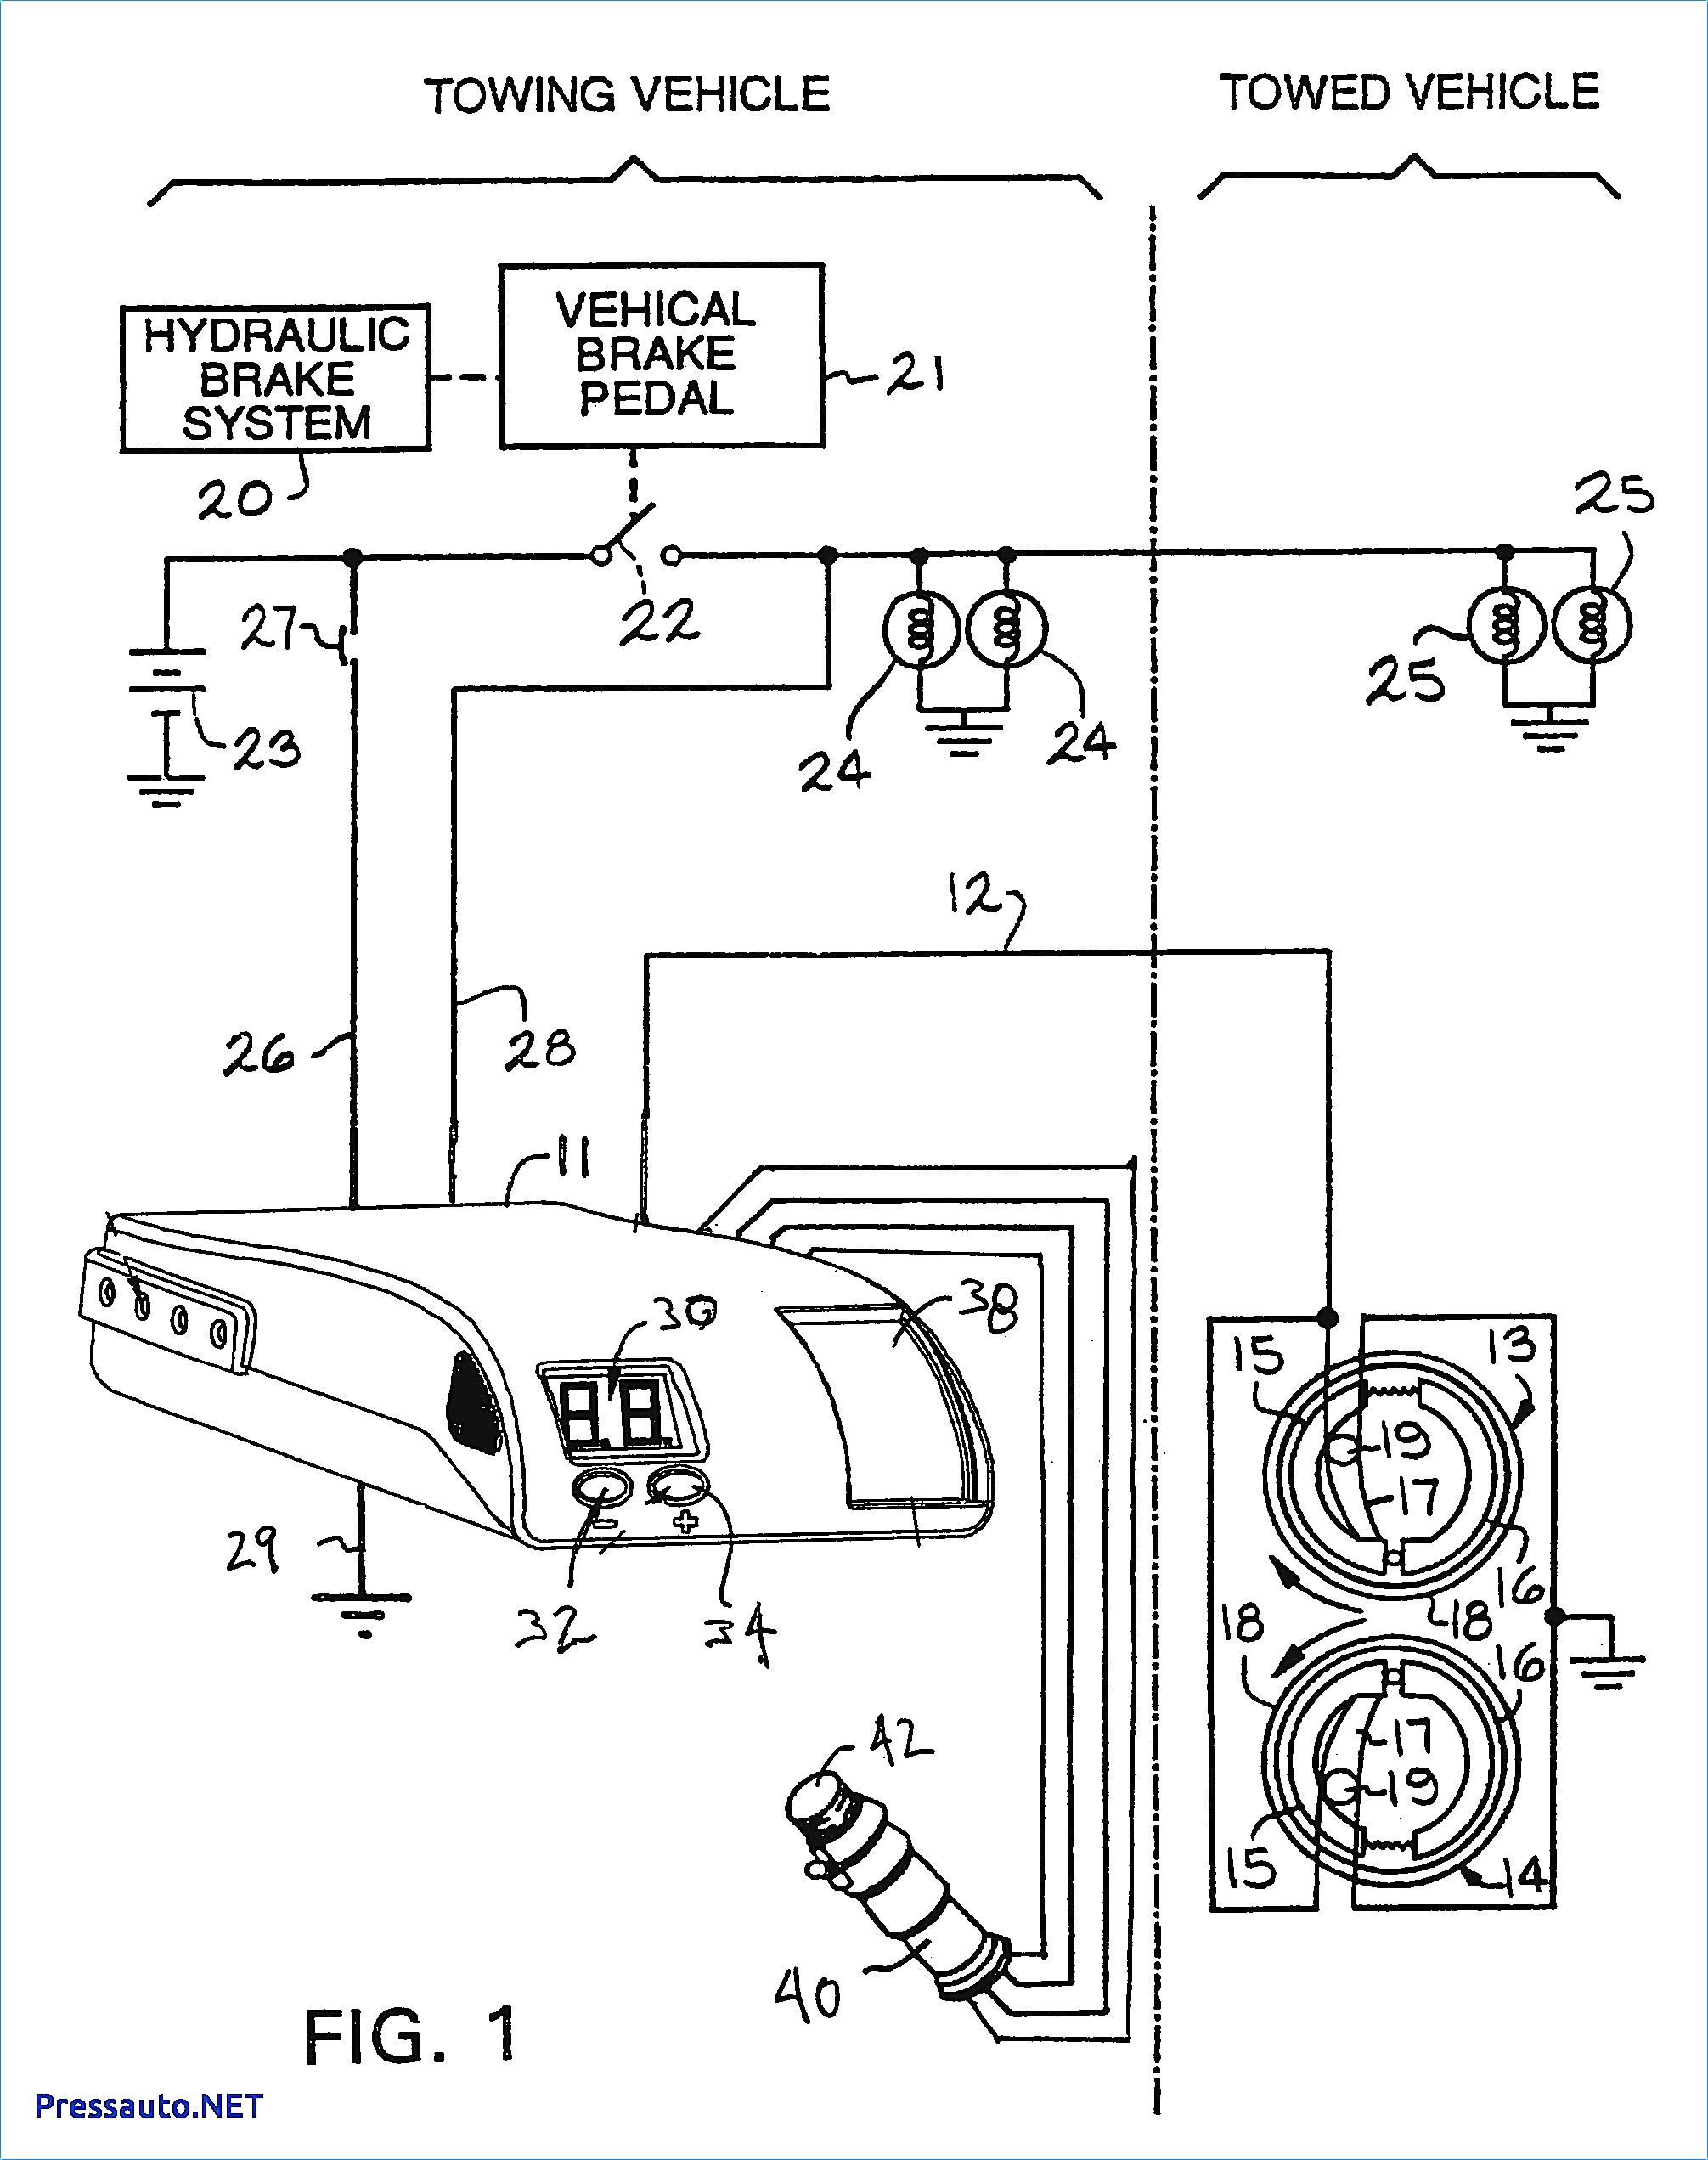 Viper 771xv Wiring Diagram Trusted Diagrams 560xv Vehicle Auto Brake System